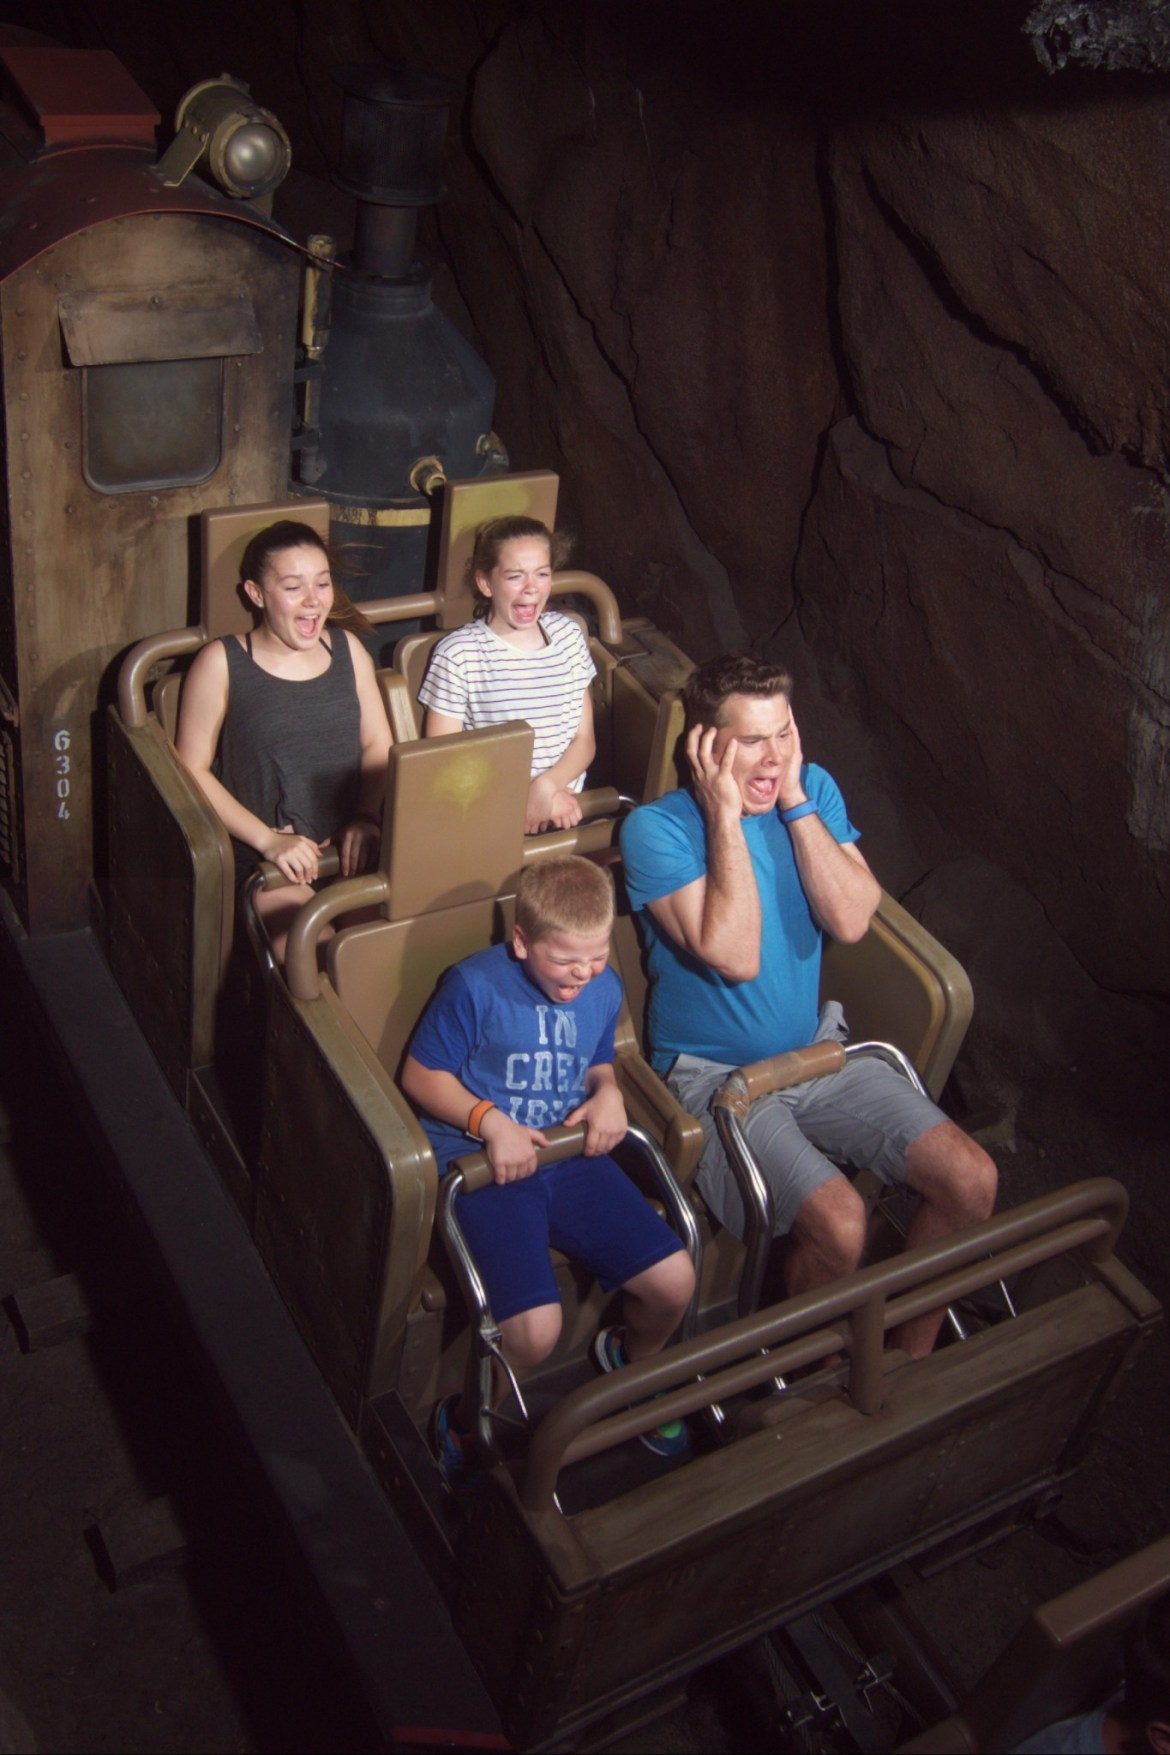 Top Ride Tips at Disney World… the inside track.